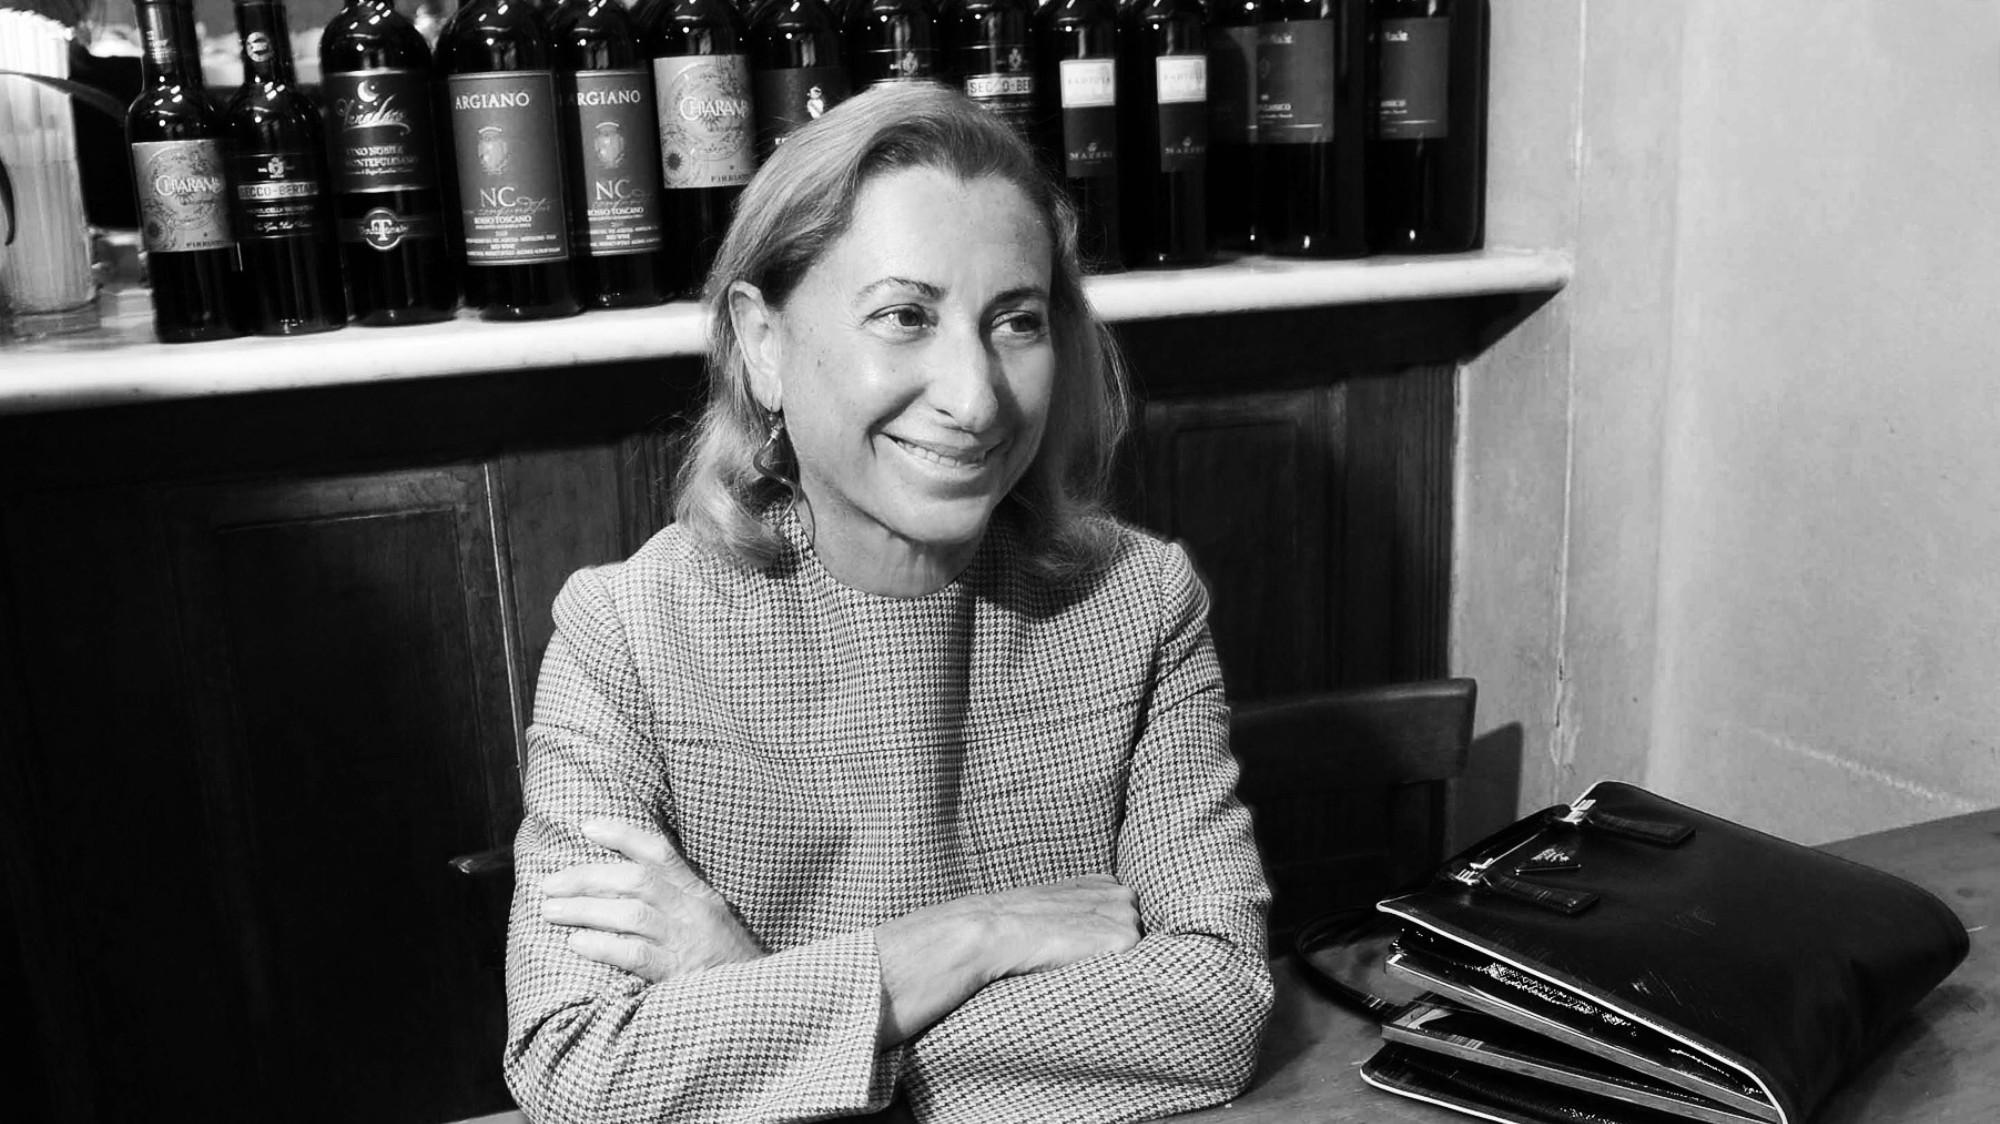 The only wisdom you will ever need courtesy of Miuccia @Prada: http://t.co/fXqToLAzO7 http://t.co/5dXdC4M8nF